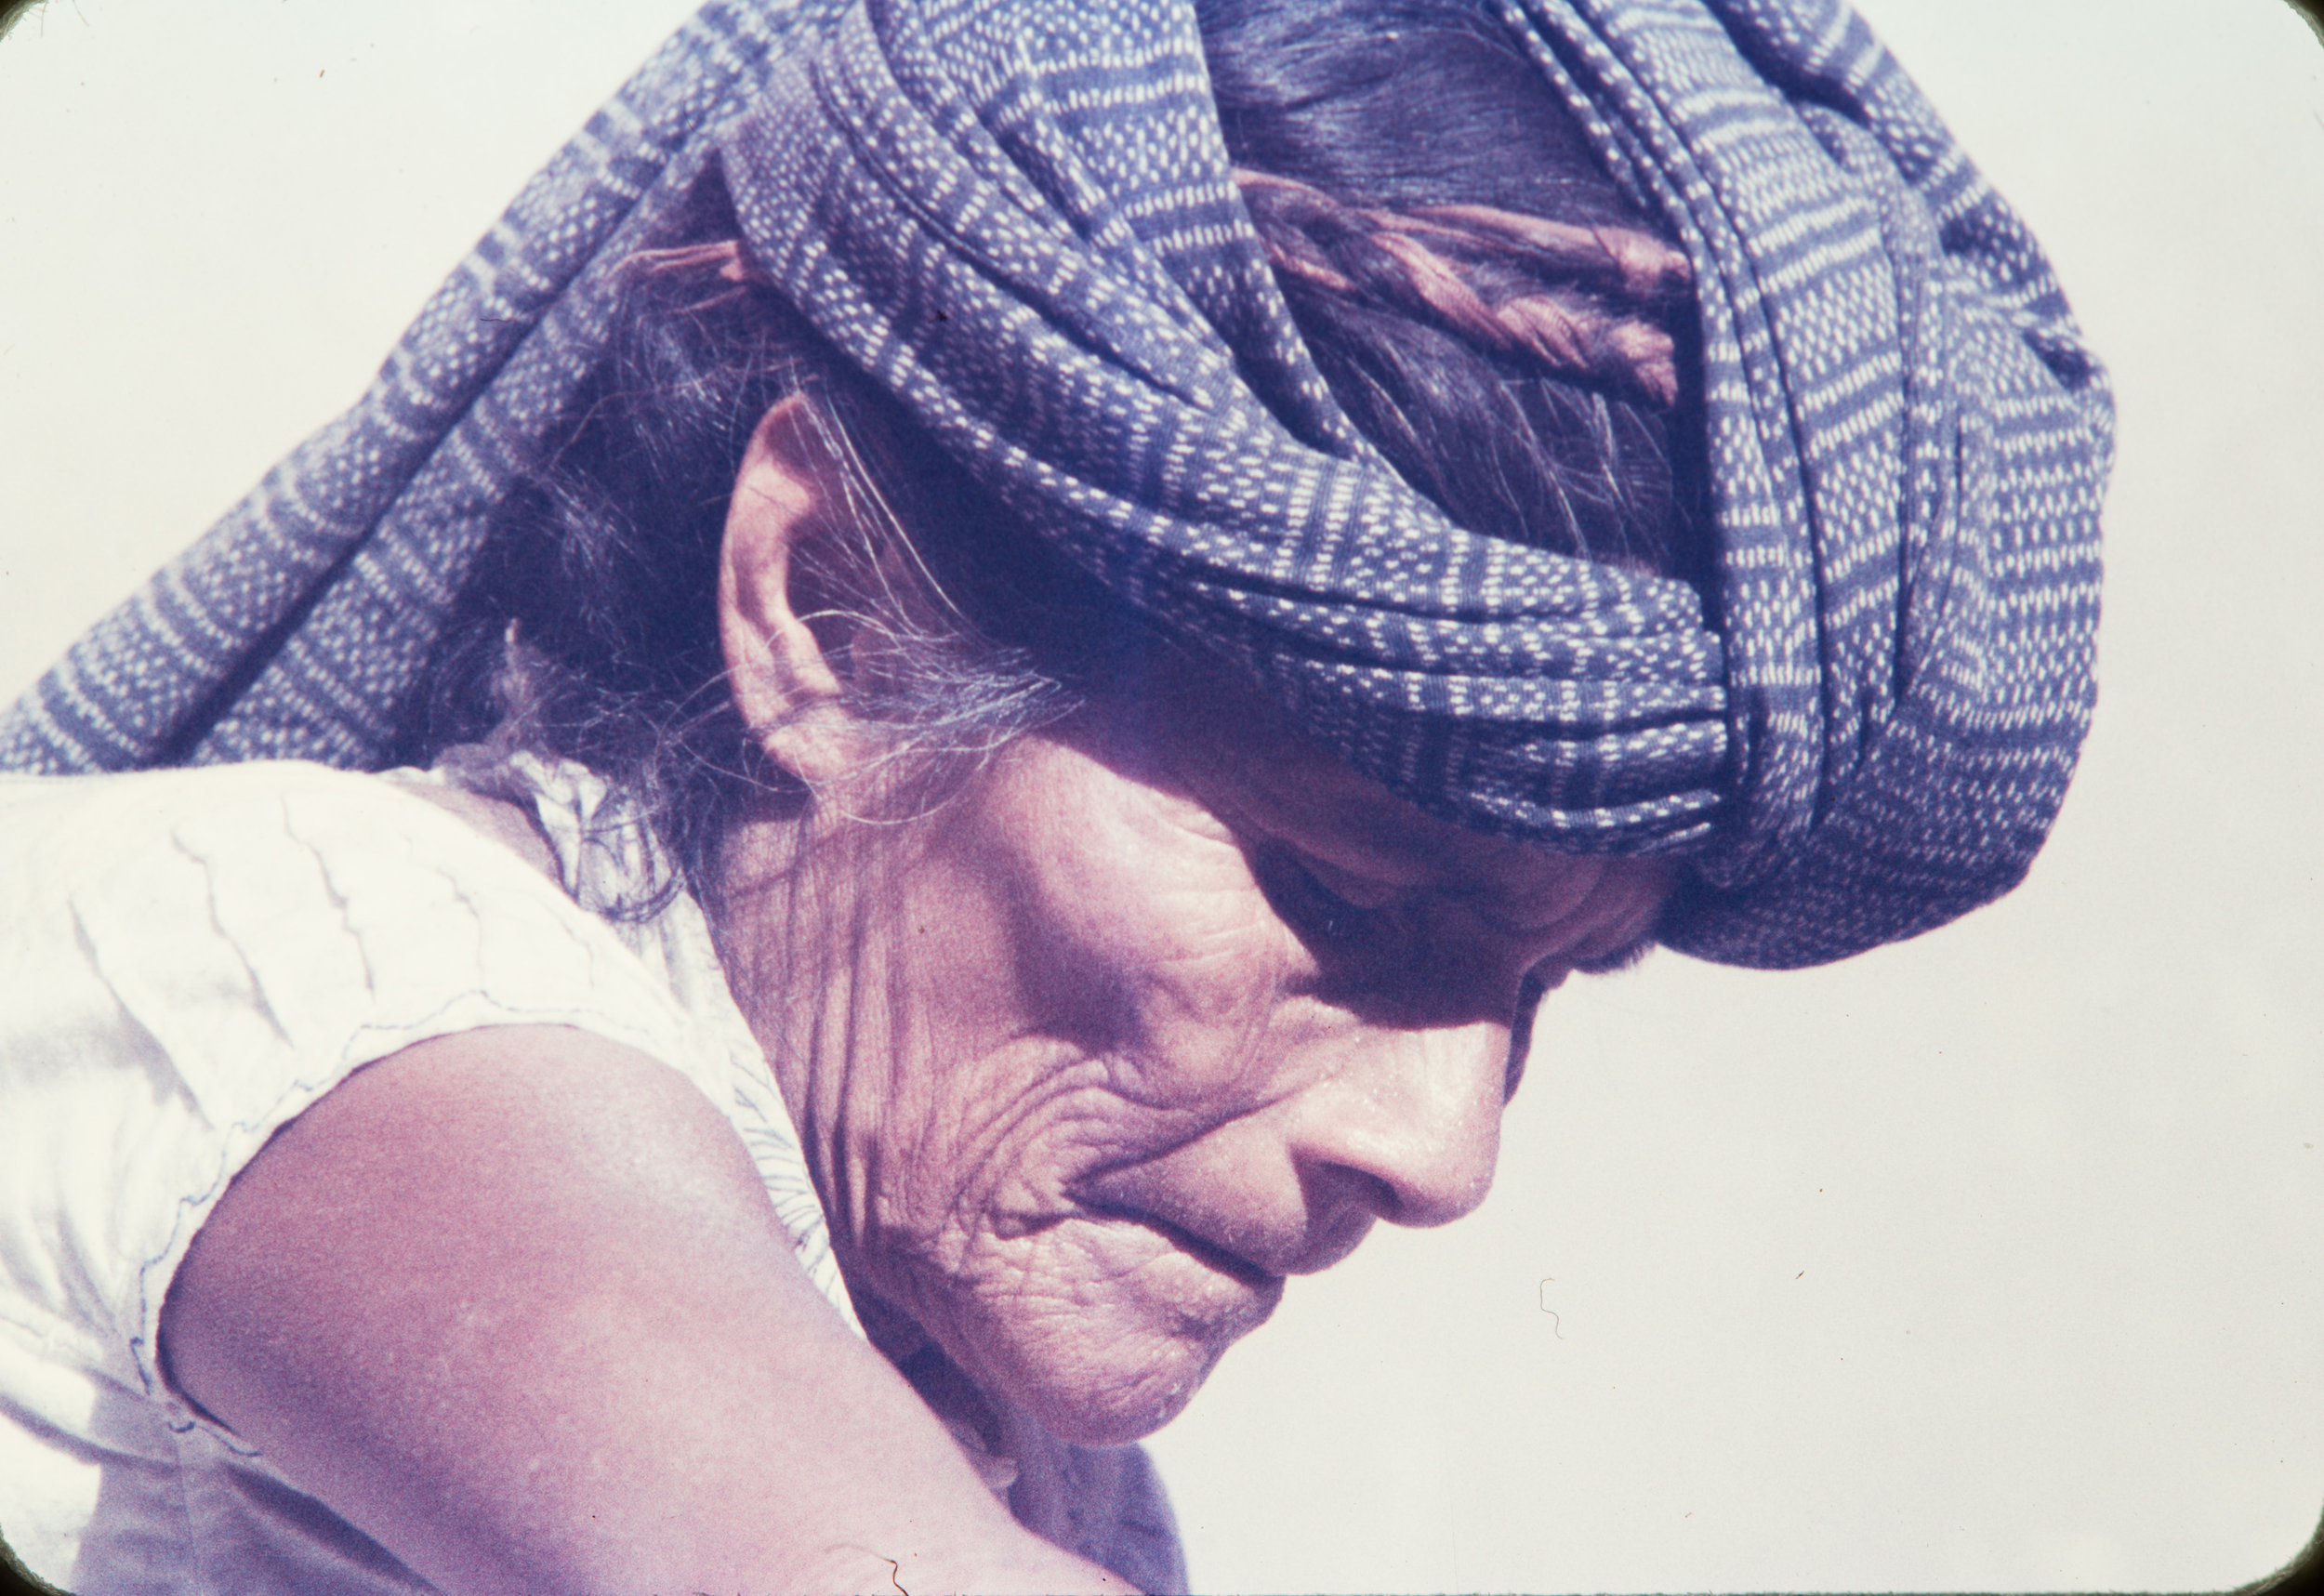 Old woman with scarf on head, Mexico, 1957